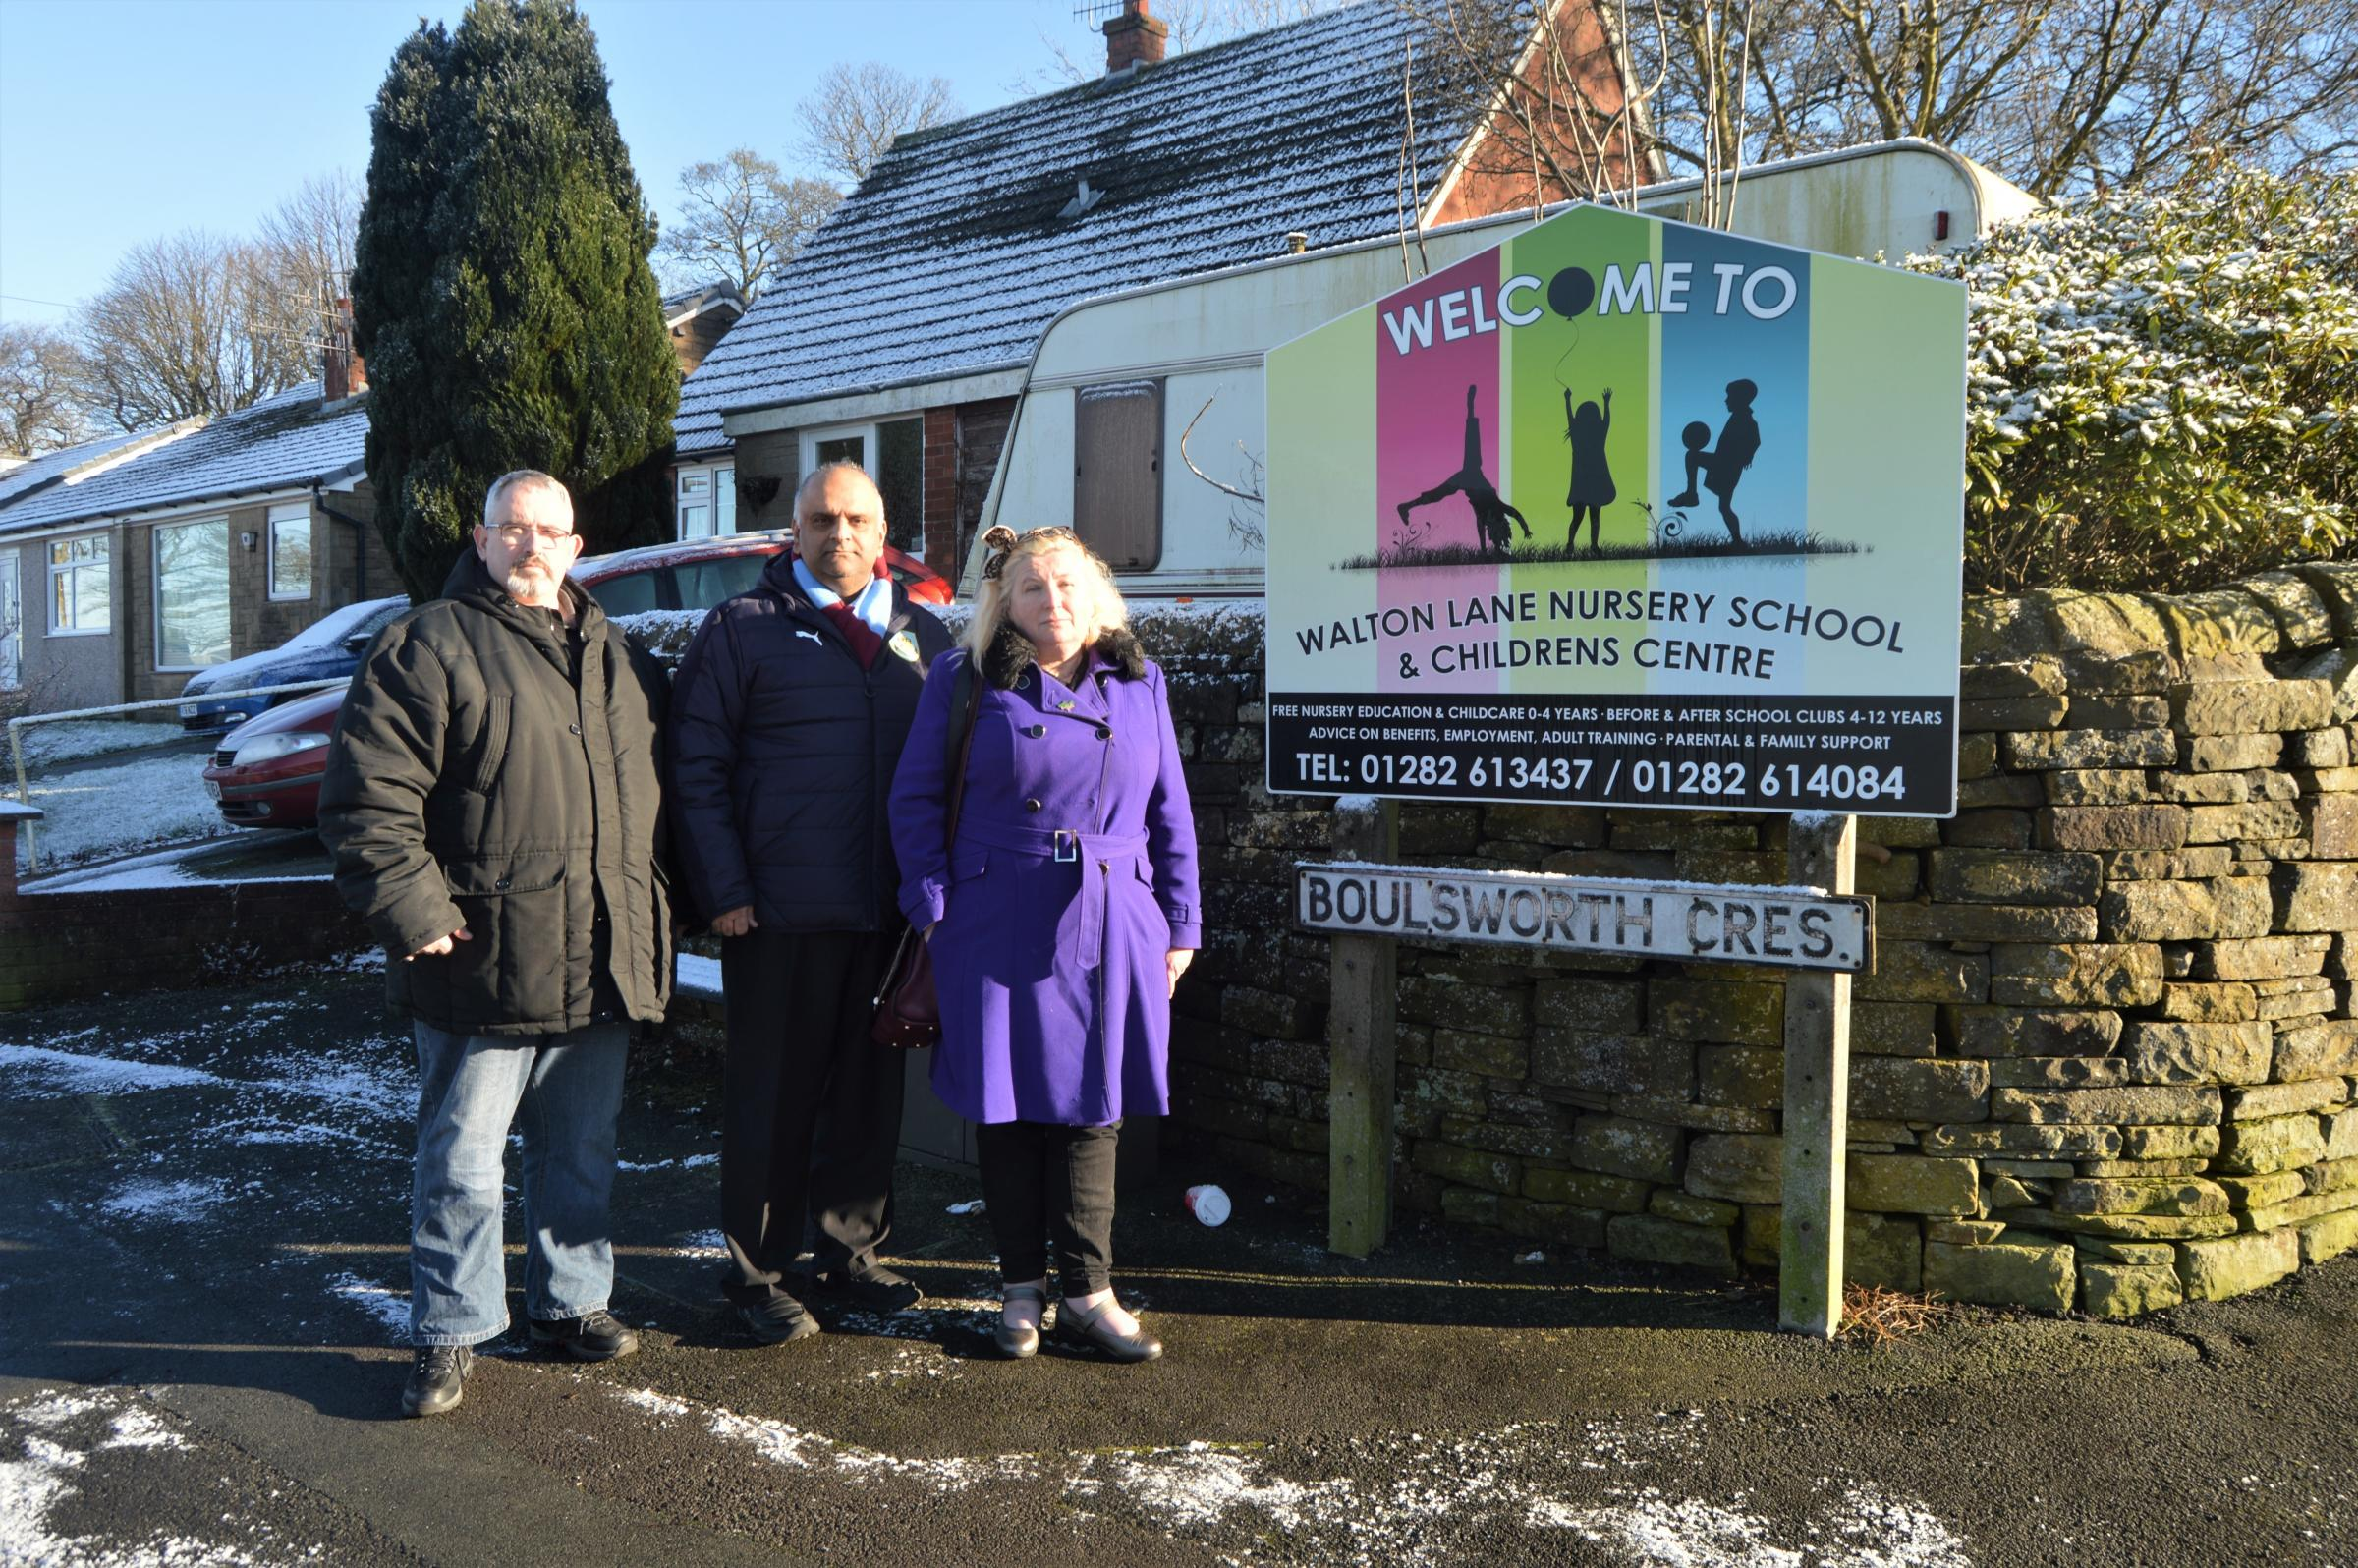 Cllr Azhar Ali with Pendle Labour councillor Wayne Blackburn (left) and campaigner Yvonne Tennant (right) outside Walton Lane Nursery